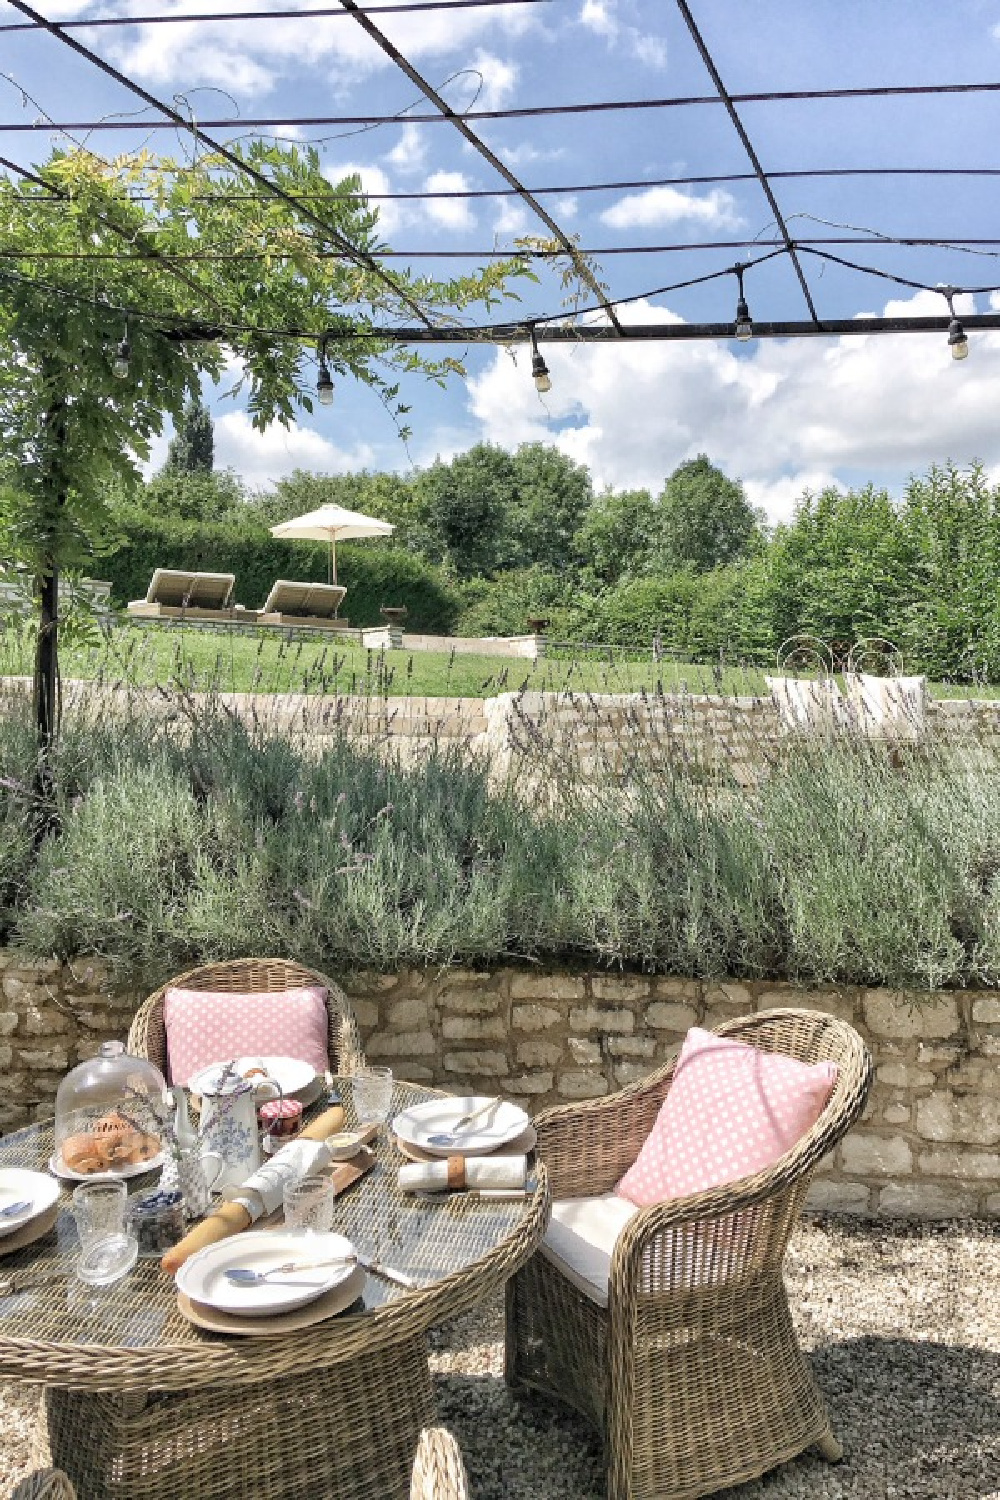 Charming outdoor dining area with kubu chairs and round table - French farmhouse by Vivi et Margot. #vivietmargot #frenchfarmhouse #dining #outdoor